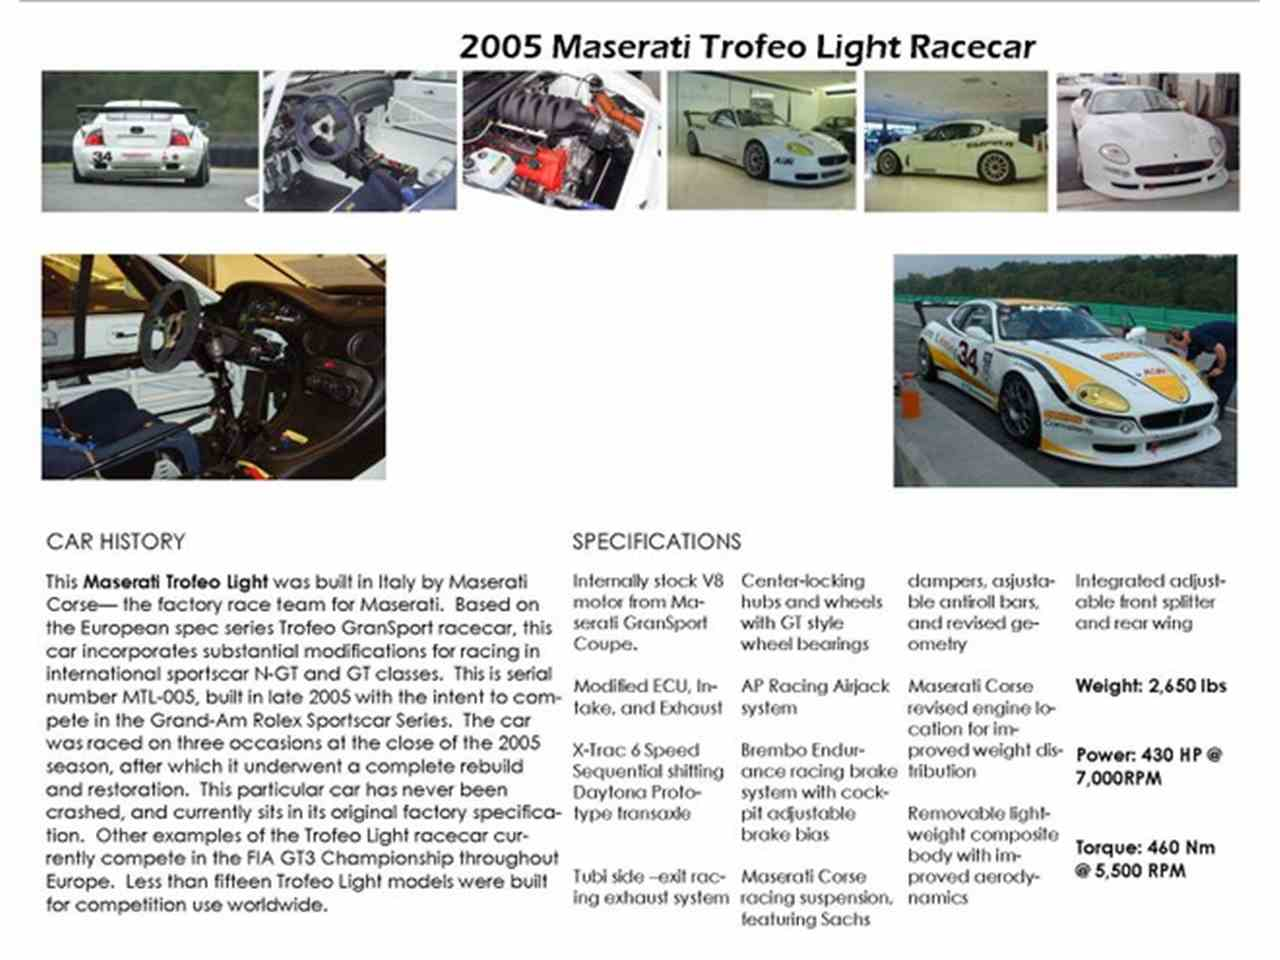 https://ccmarketplace.azureedge.net/cc-temp/listing/101/1262/9188248-2005-maserati-trofeo-light-std-c.jpg